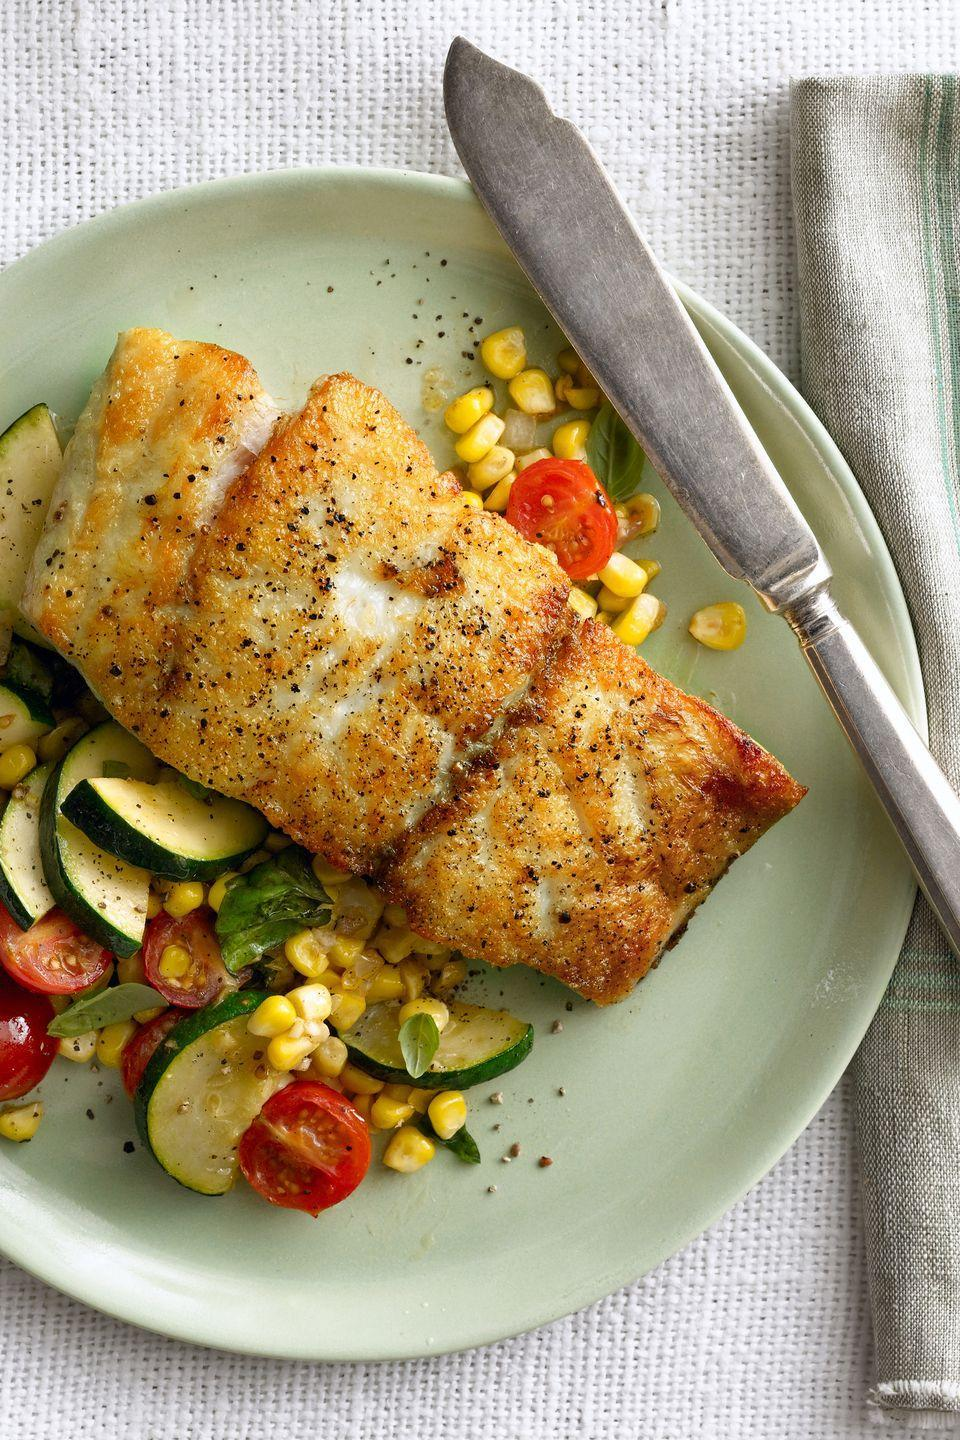 """<p>This refreshing seafood dinner is perfect for a late-summer or early-fall evening.<br></p><p><em><a href=""""https://www.goodhousekeeping.com/food-recipes/a16112/seared-grouper-corn-zucchini-tomato-saute-recipe-clx0914/"""" rel=""""nofollow noopener"""" target=""""_blank"""" data-ylk=""""slk:Get the recipe for Seared Grouper with Corn, Zucchini, and Tomato Sauté »"""" class=""""link rapid-noclick-resp"""">Get the recipe for Seared Grouper with Corn, Zucchini, and Tomato Sauté »</a></em> </p>"""